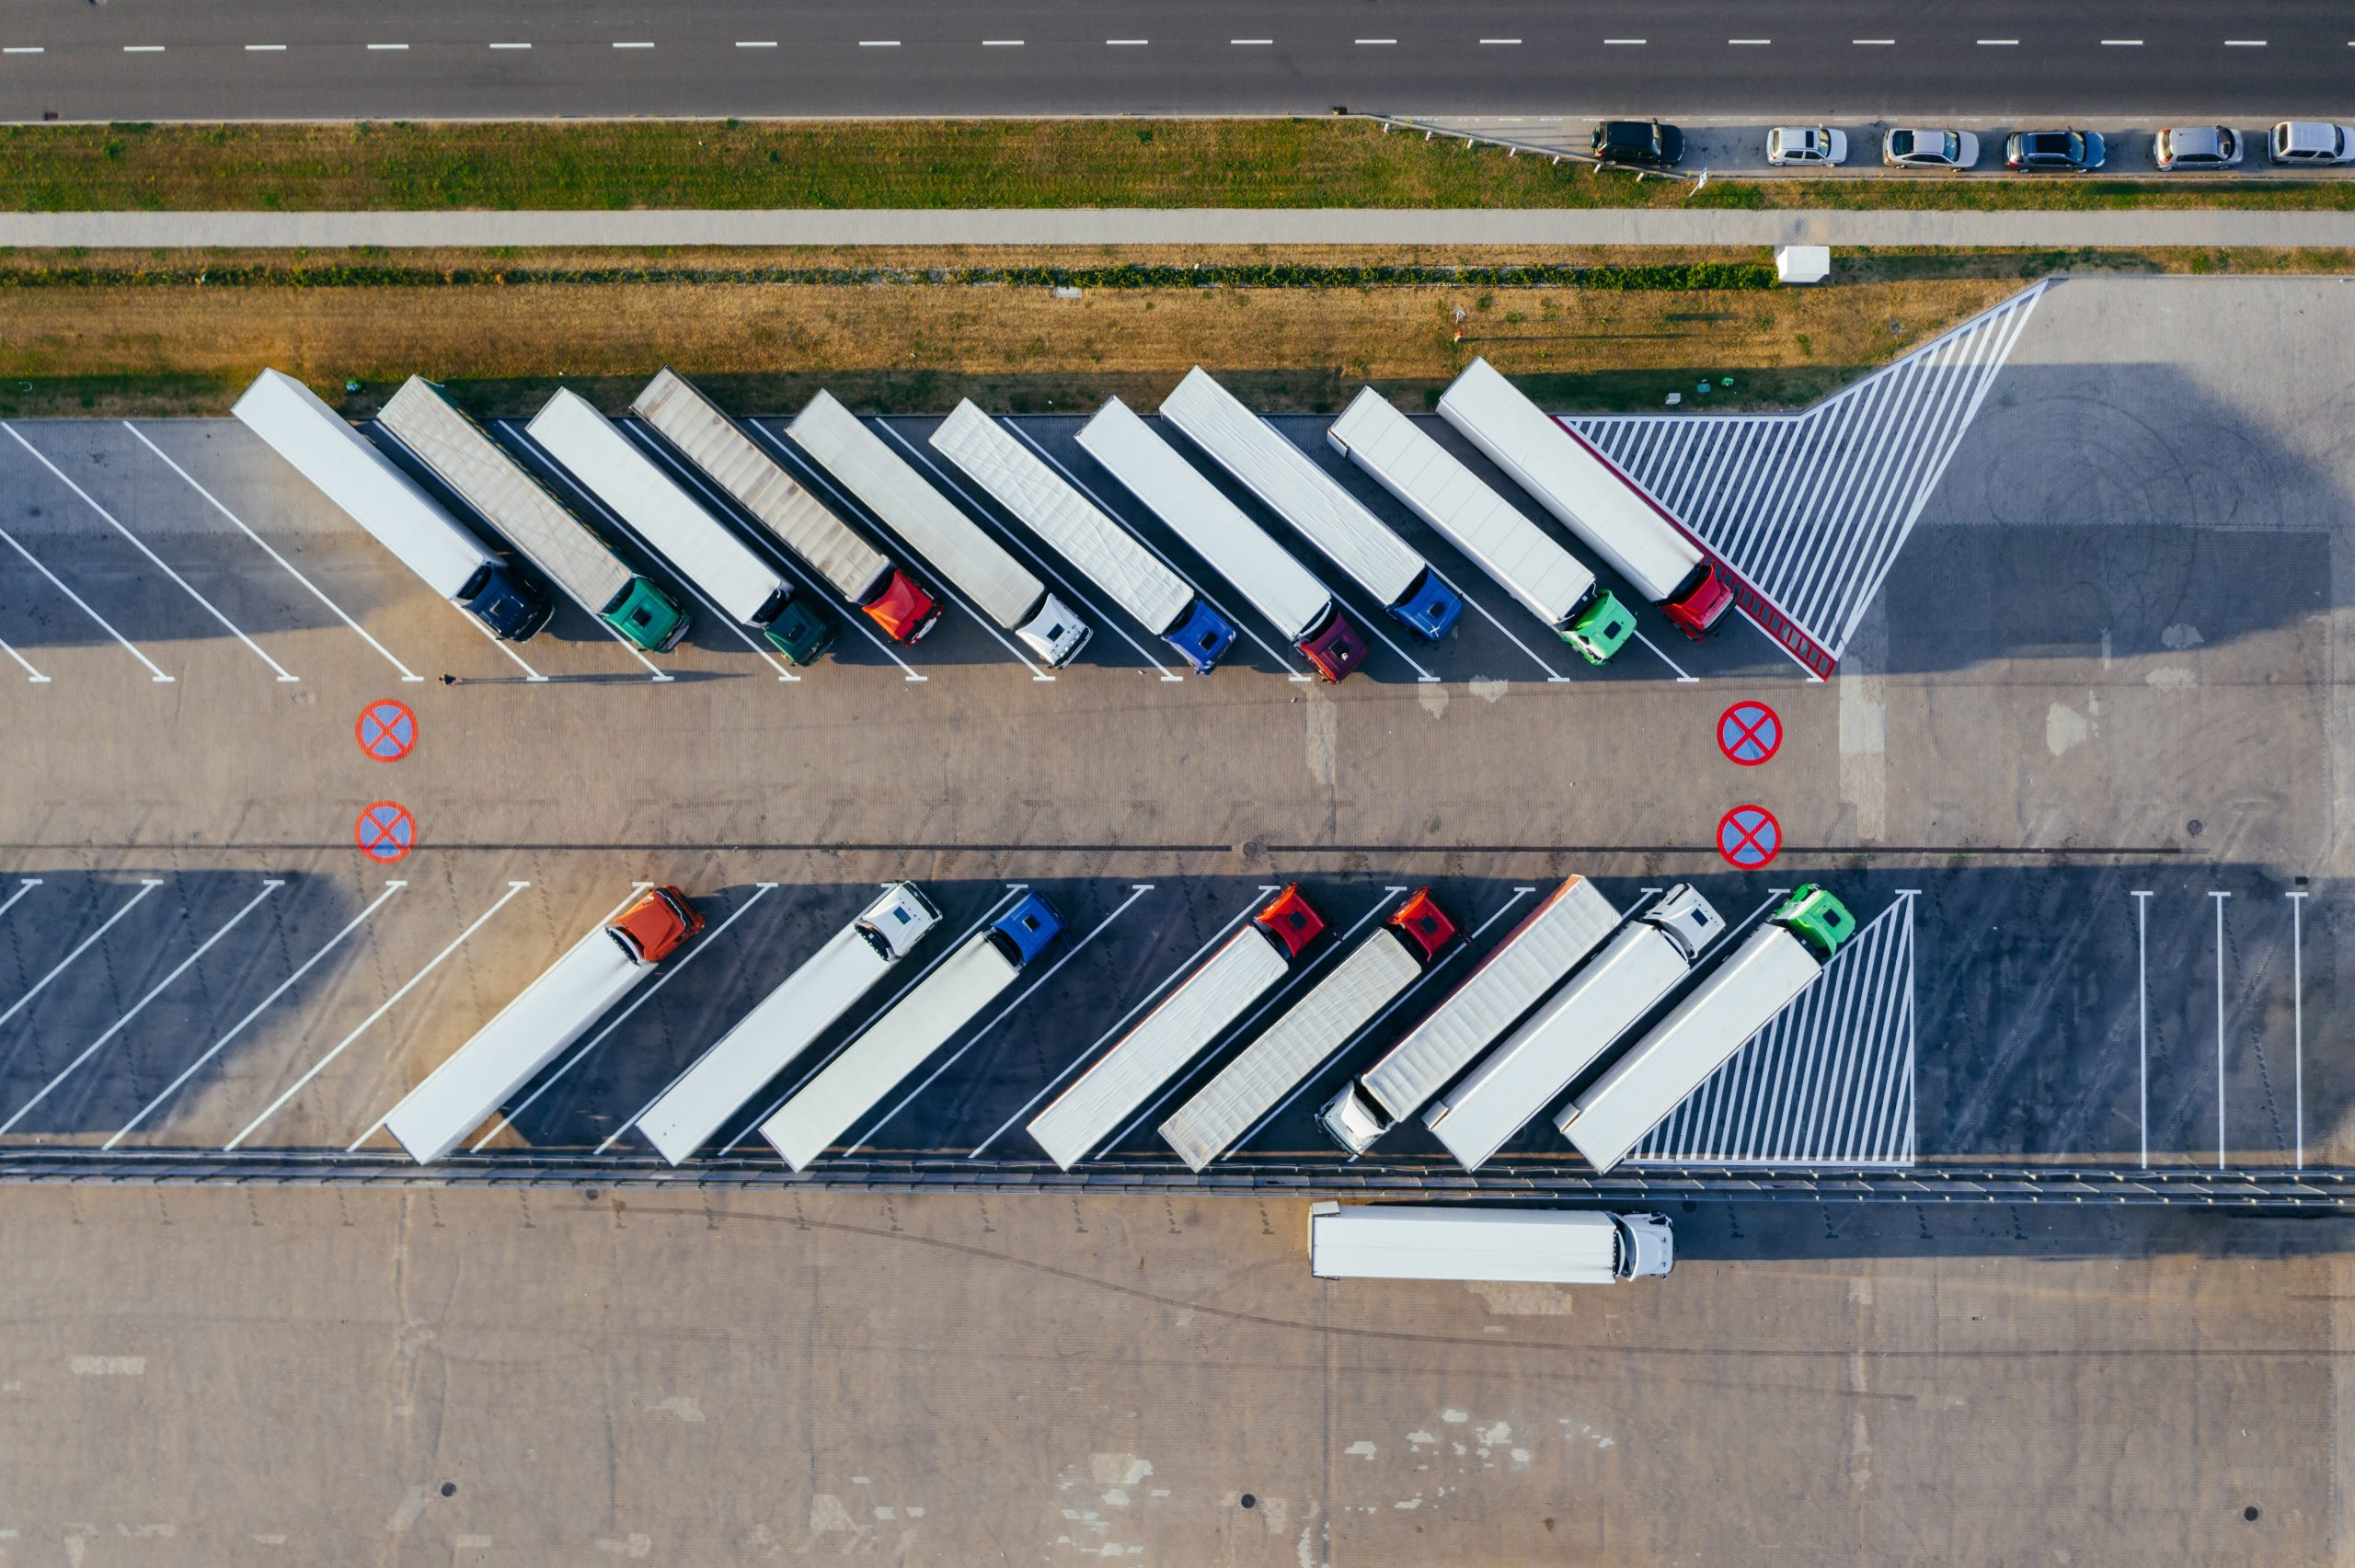 Trucks seen from above